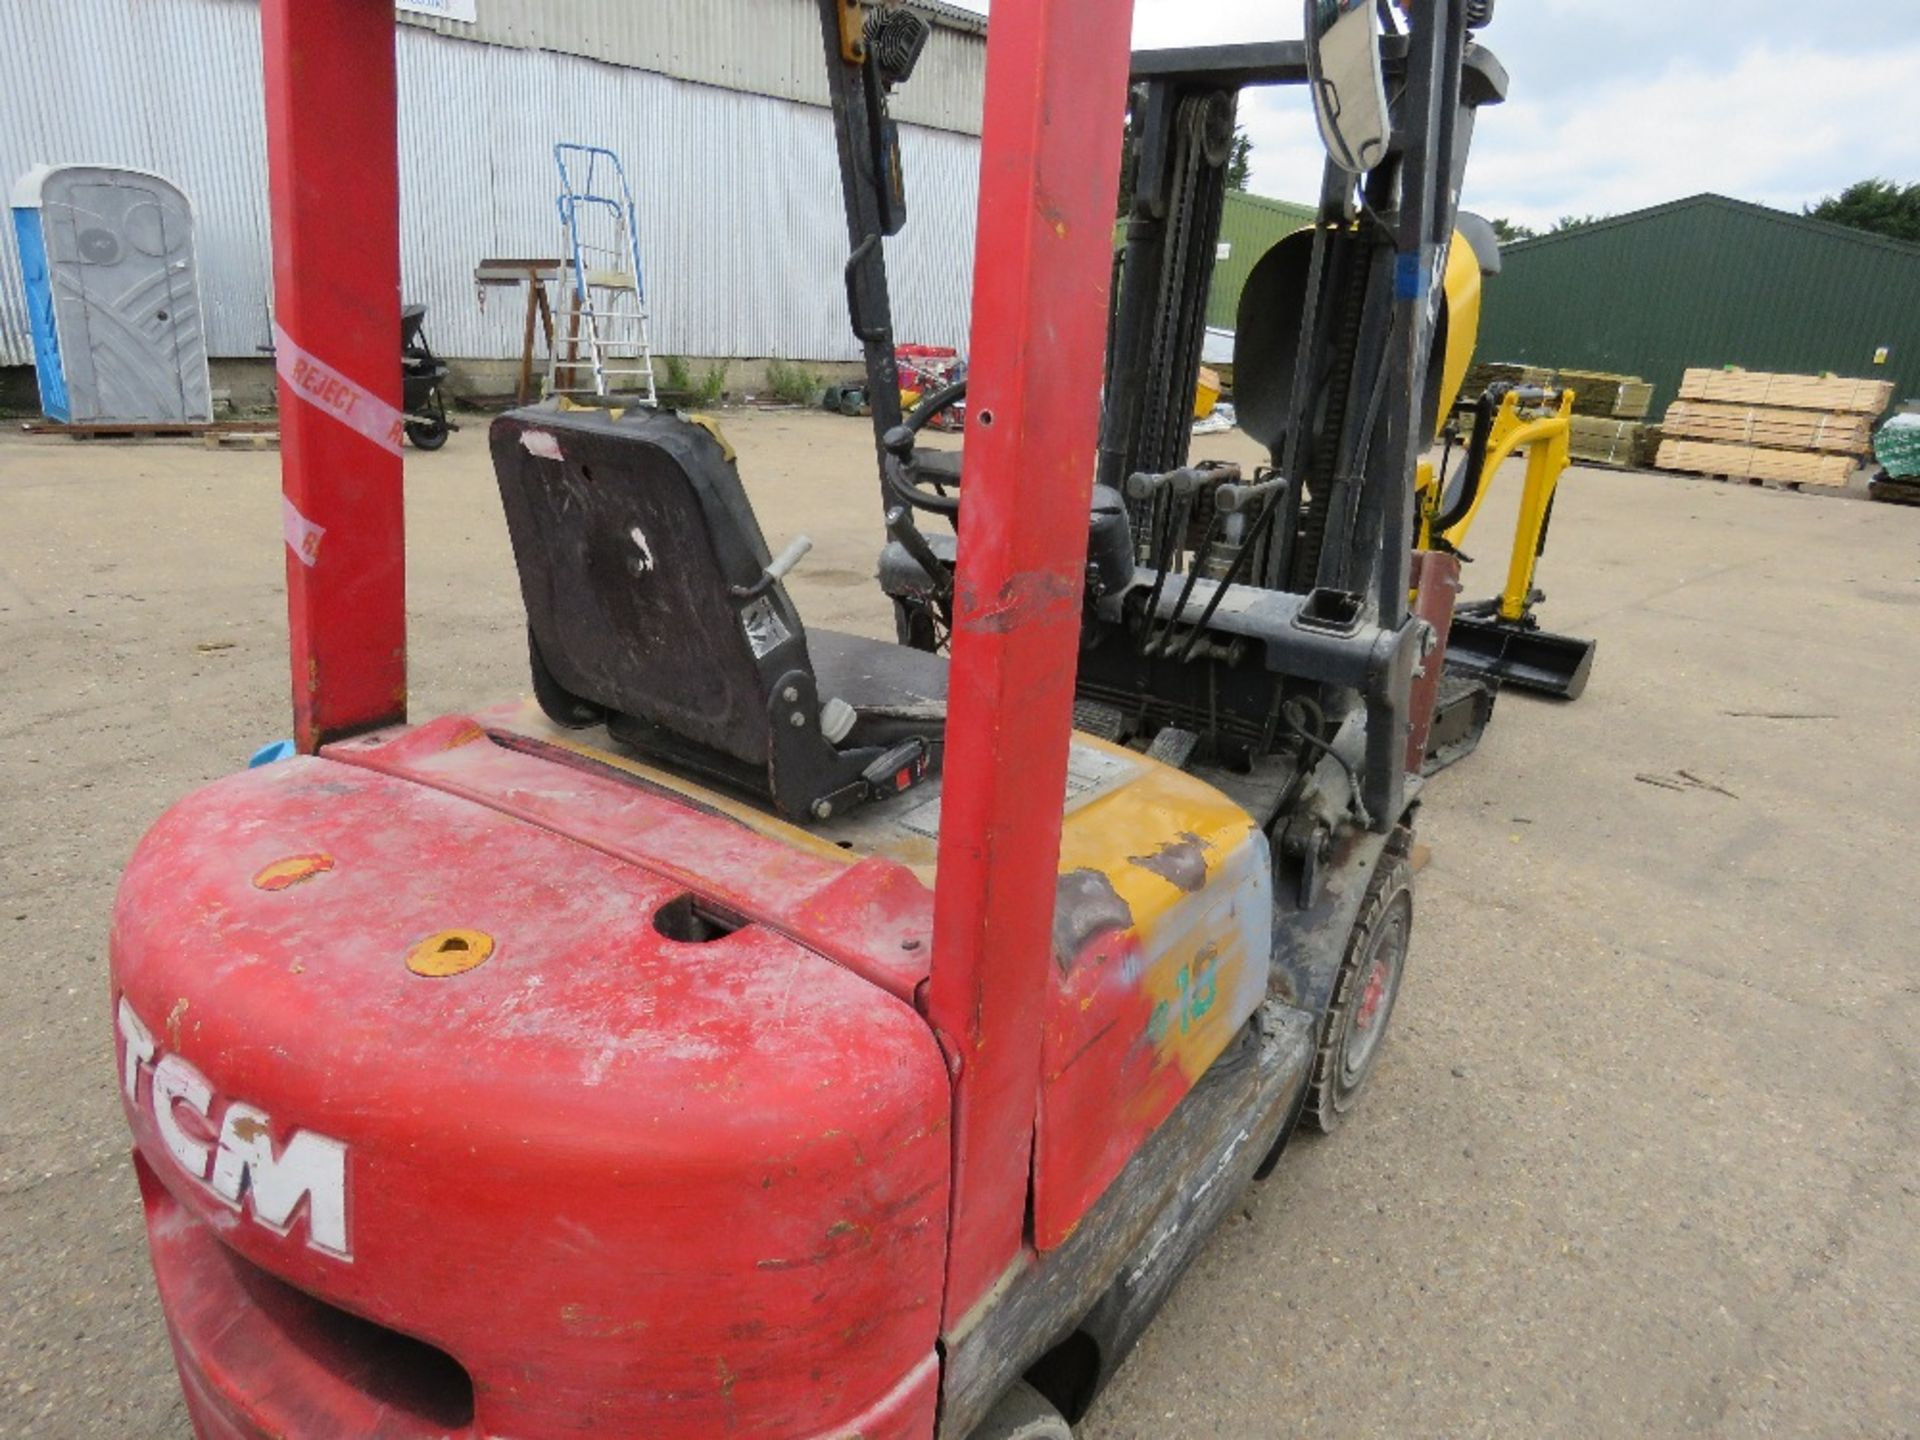 Lot 2 - TCM CONTAINER SPEC FHD18Z8 DIESEL FORKLIFT WITH SIDE SHIFT ON SOLID TYRES, YEAR 1999, 1.8 TONNE LIFT